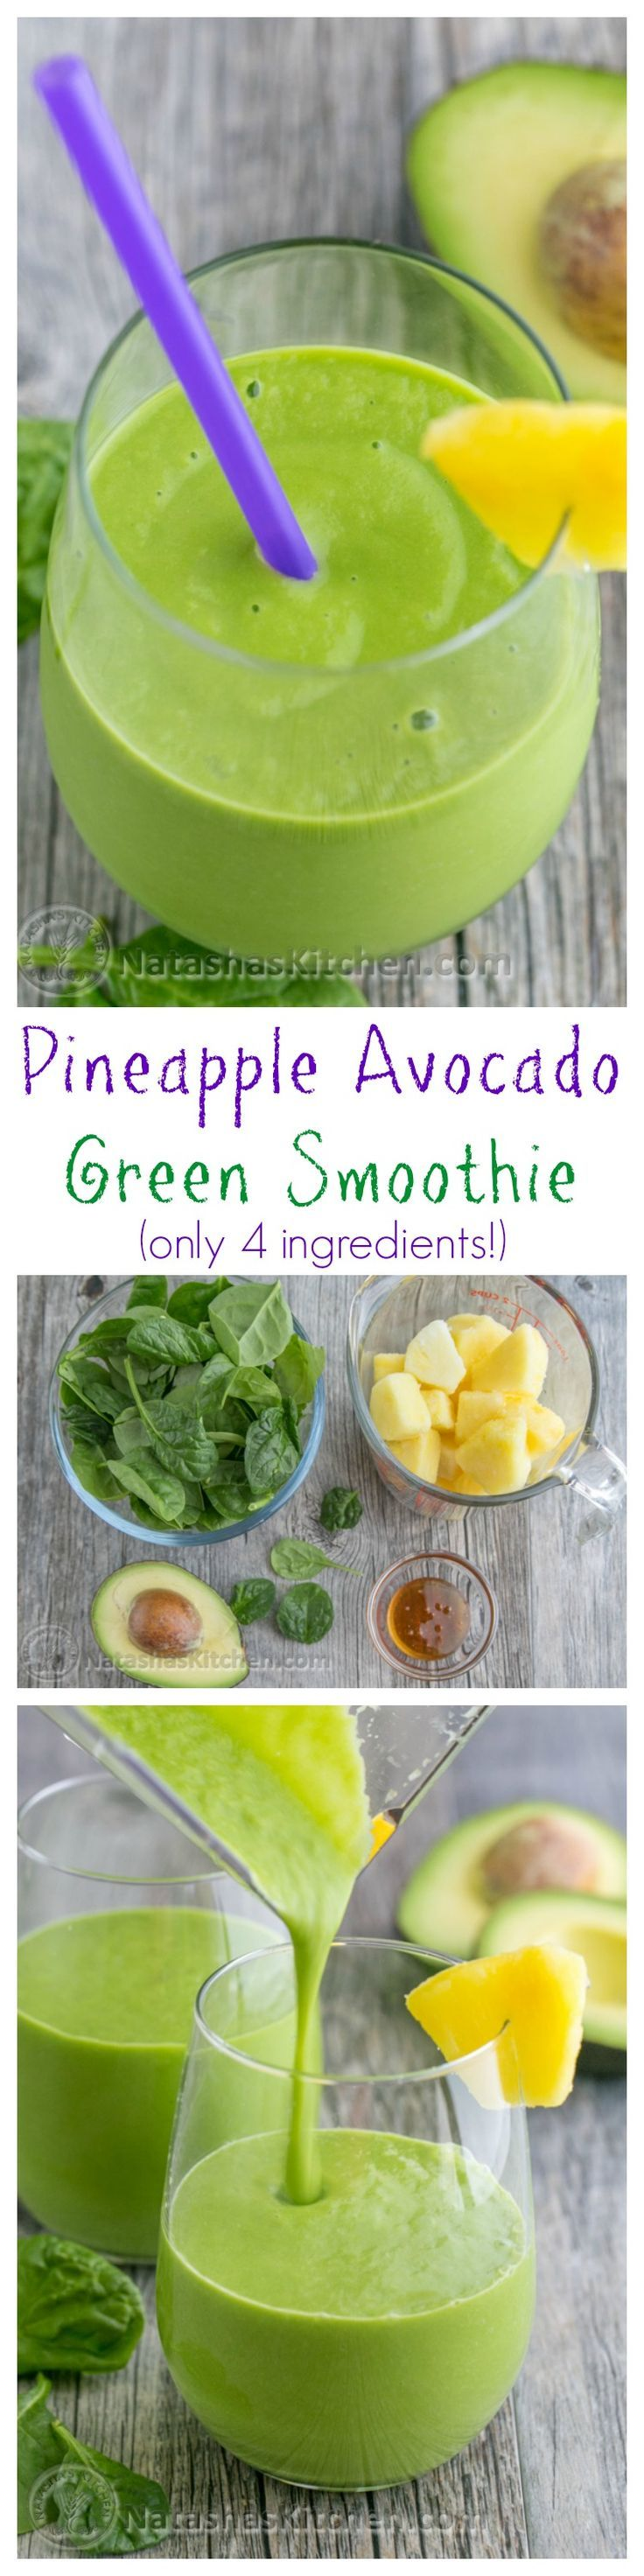 This pineapple avocado green smoothie is delicious, nutritious, energy boosting and good till the last drop /natashaskitchen/